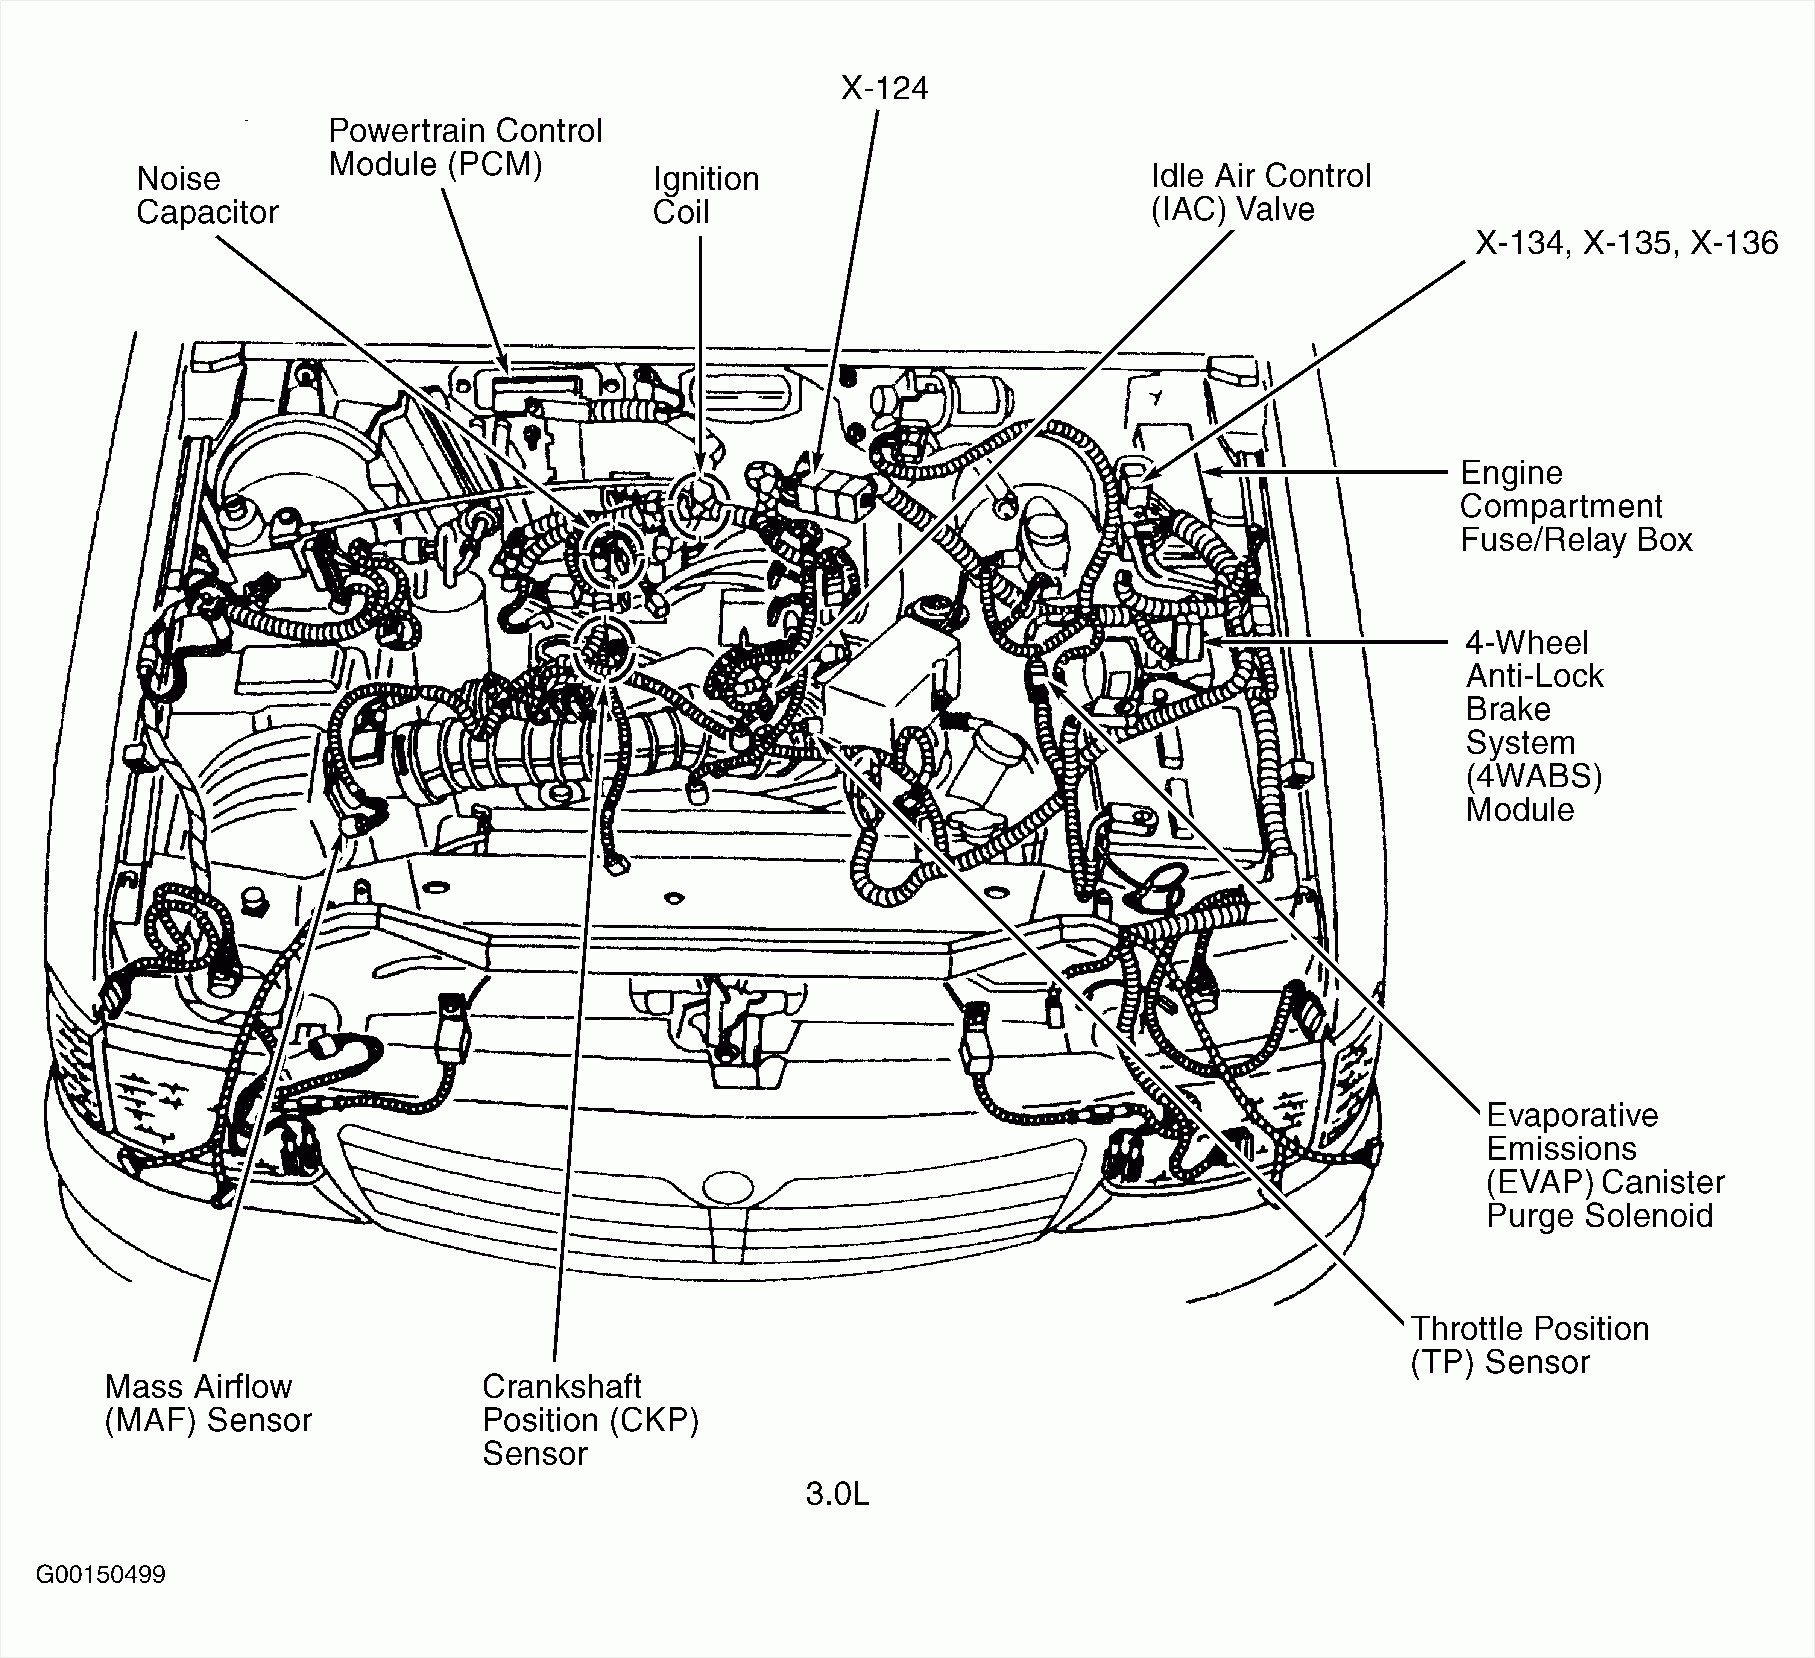 2004 Vw Beetle Parts Diagram